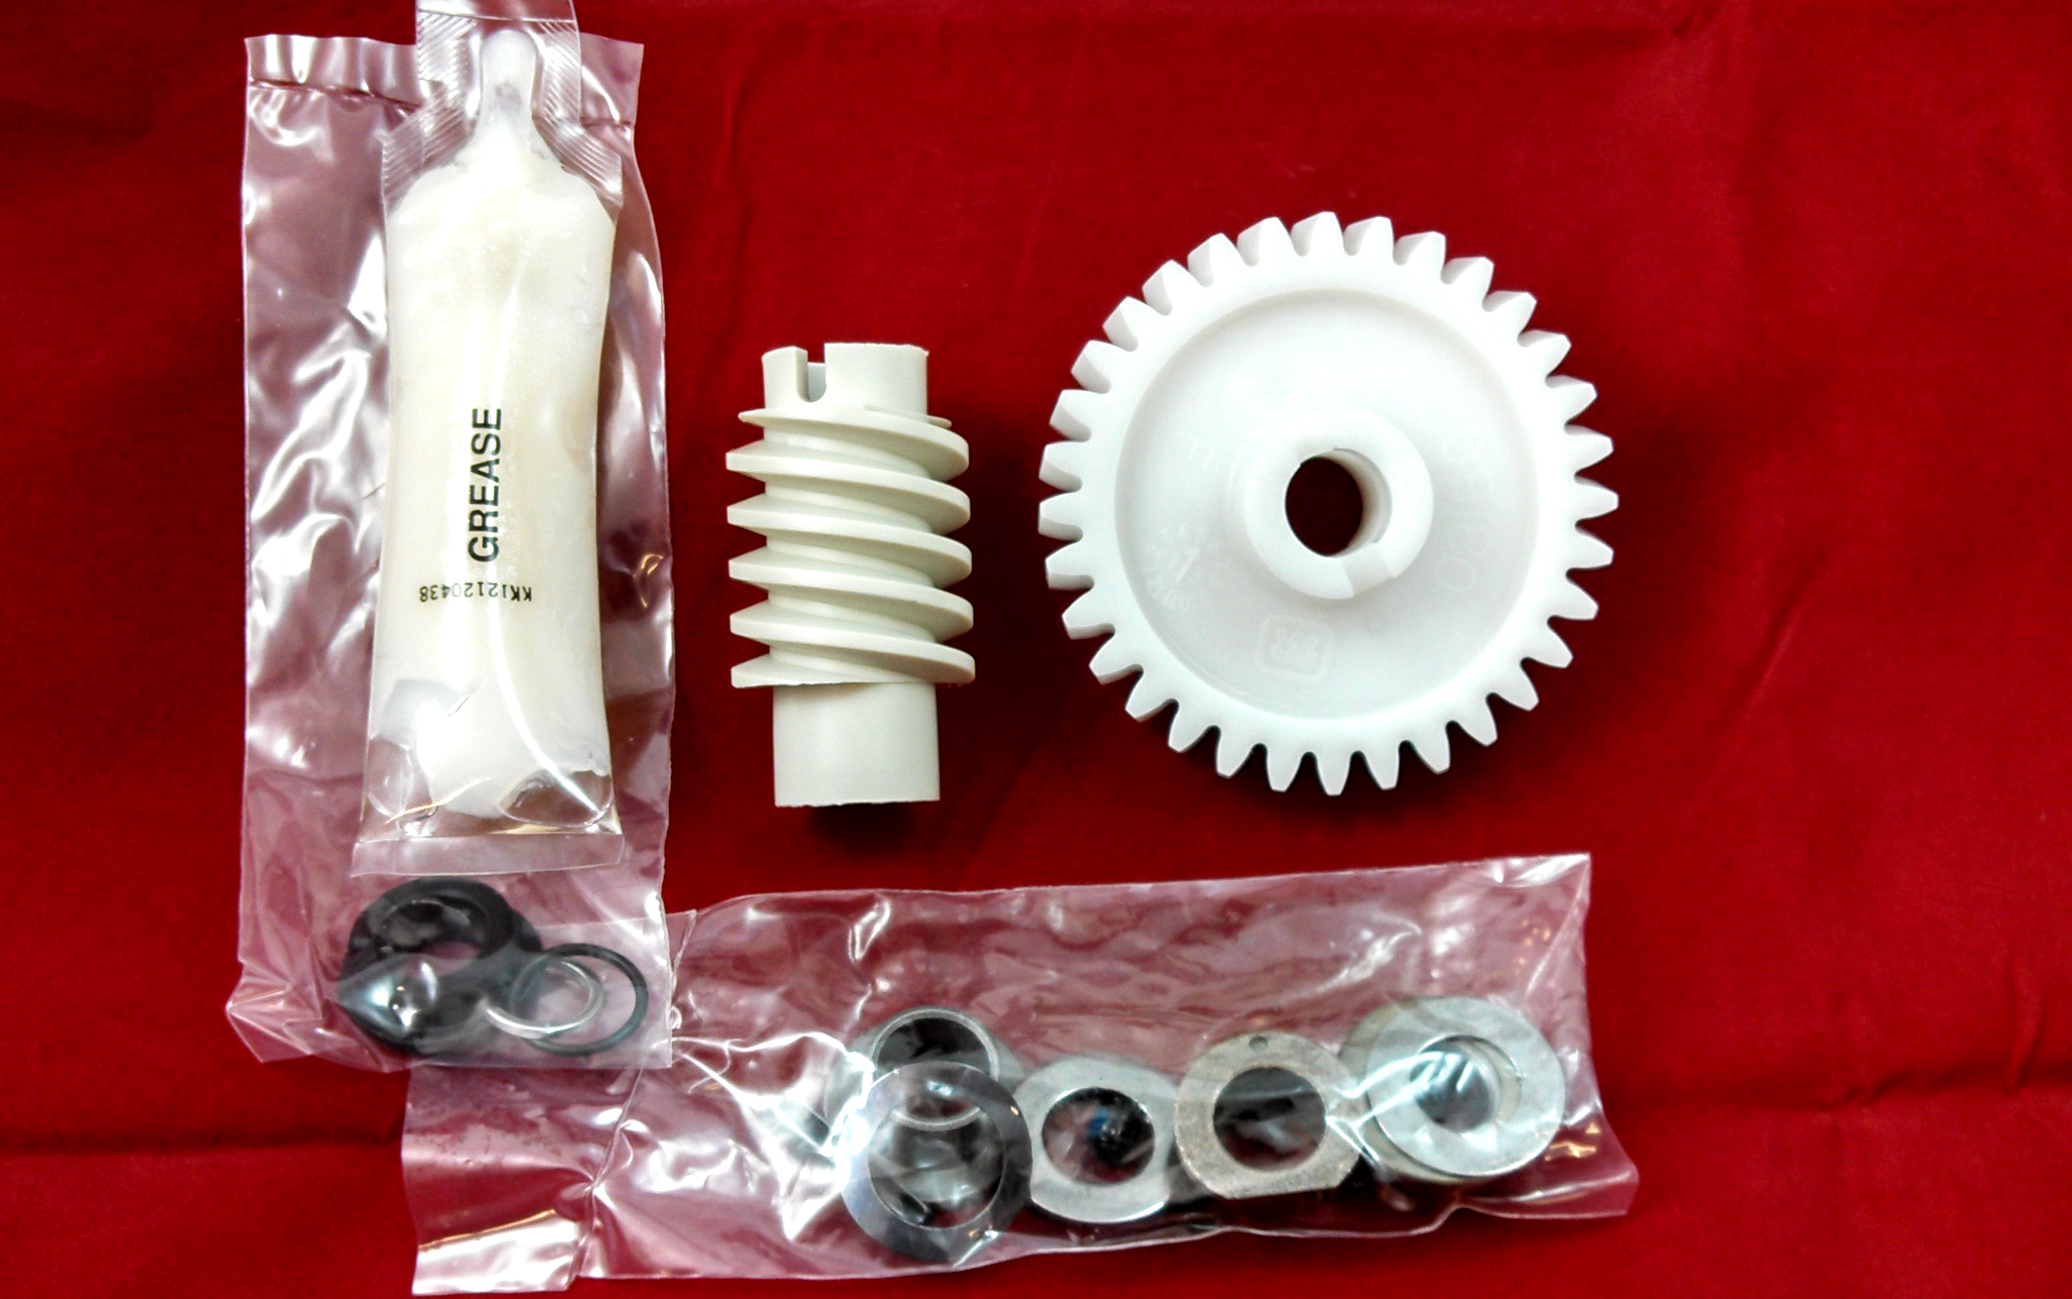 41A2817 Liftmaster Garage Door Opener Drive Gear Fits 41C4220A Kit And  Sears Craftsman Replacement For 1